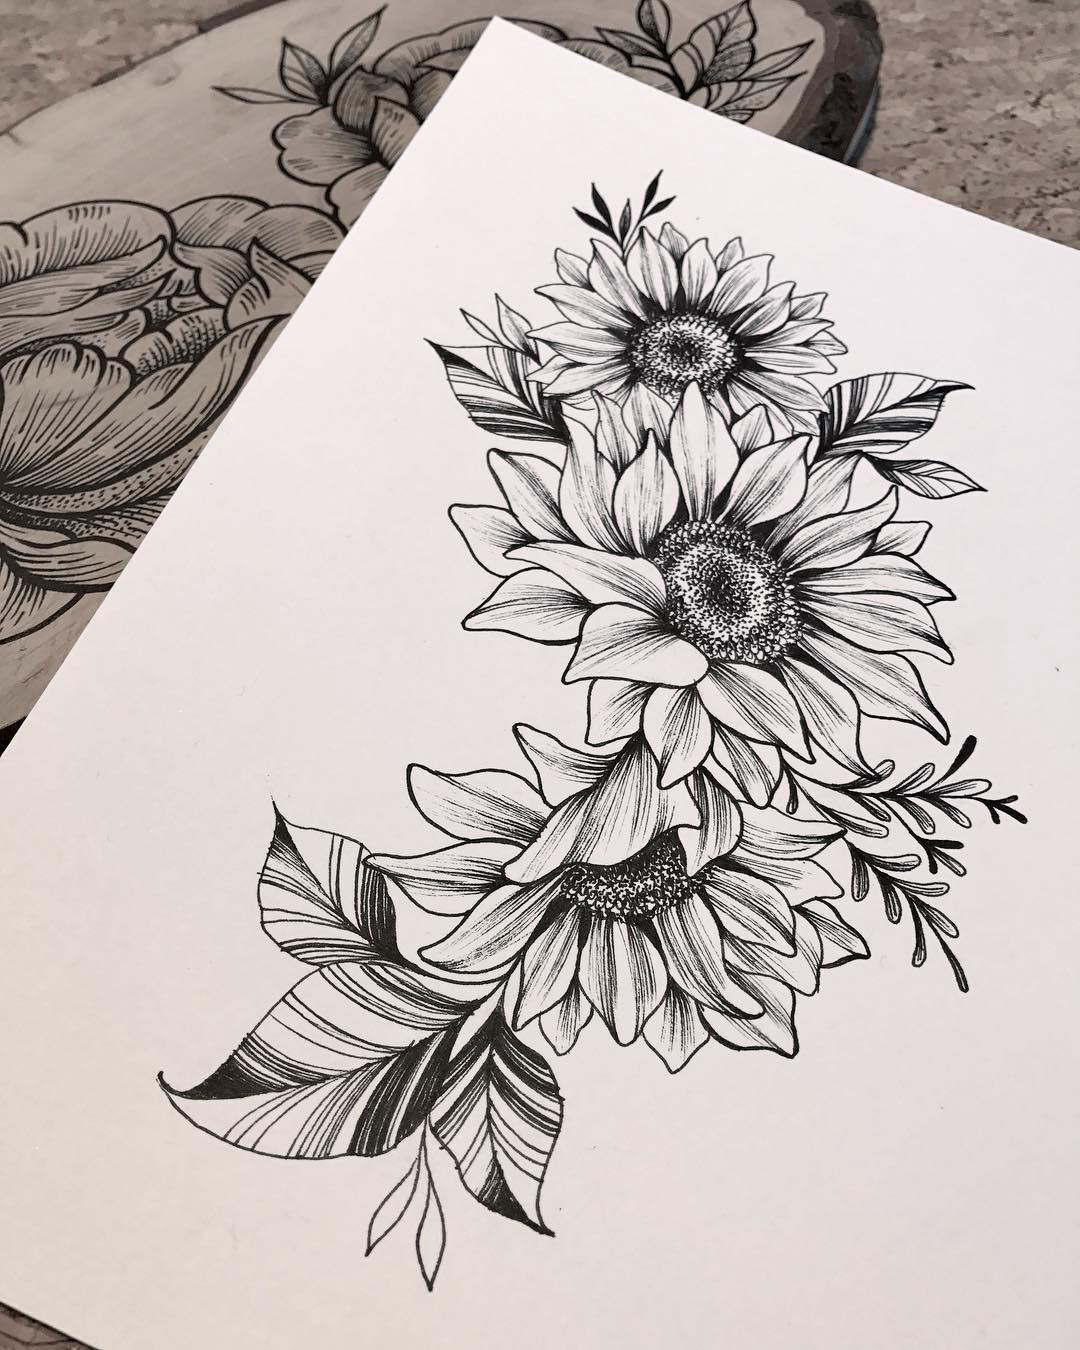 Sunflowers composition with hive 🌻🐝 #linework Done by ...